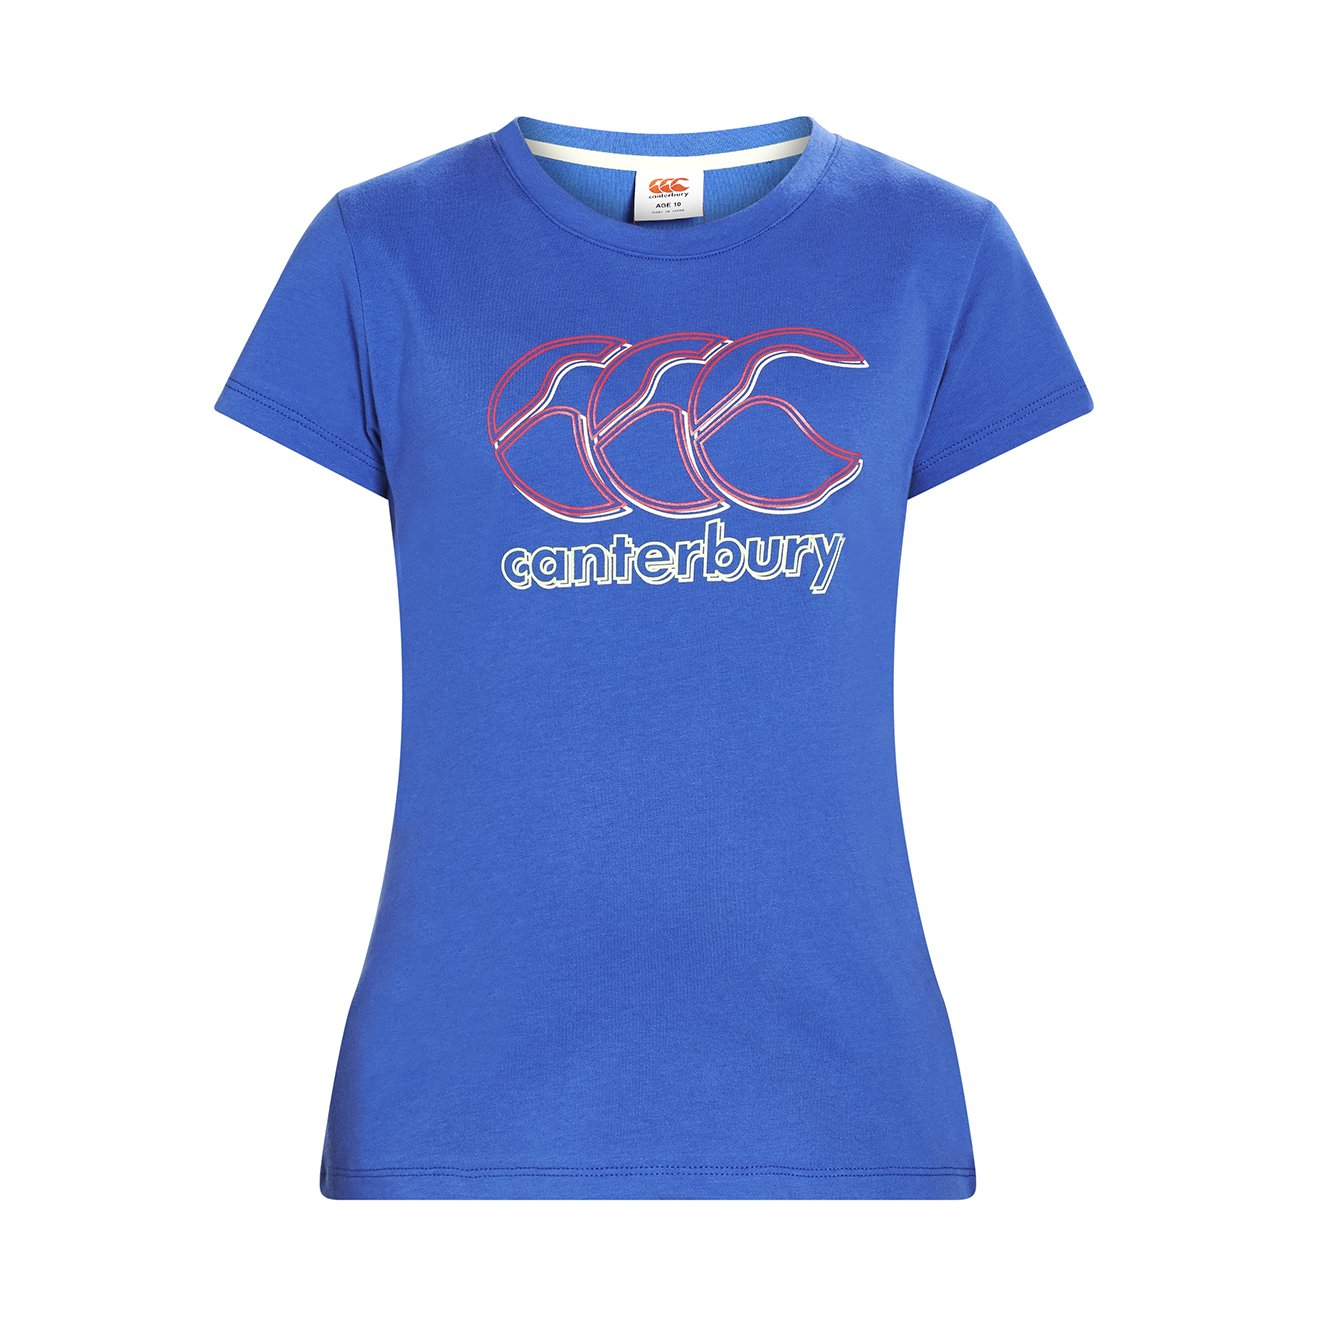 Canterbury Girl's CCC Graphic T-Shirt